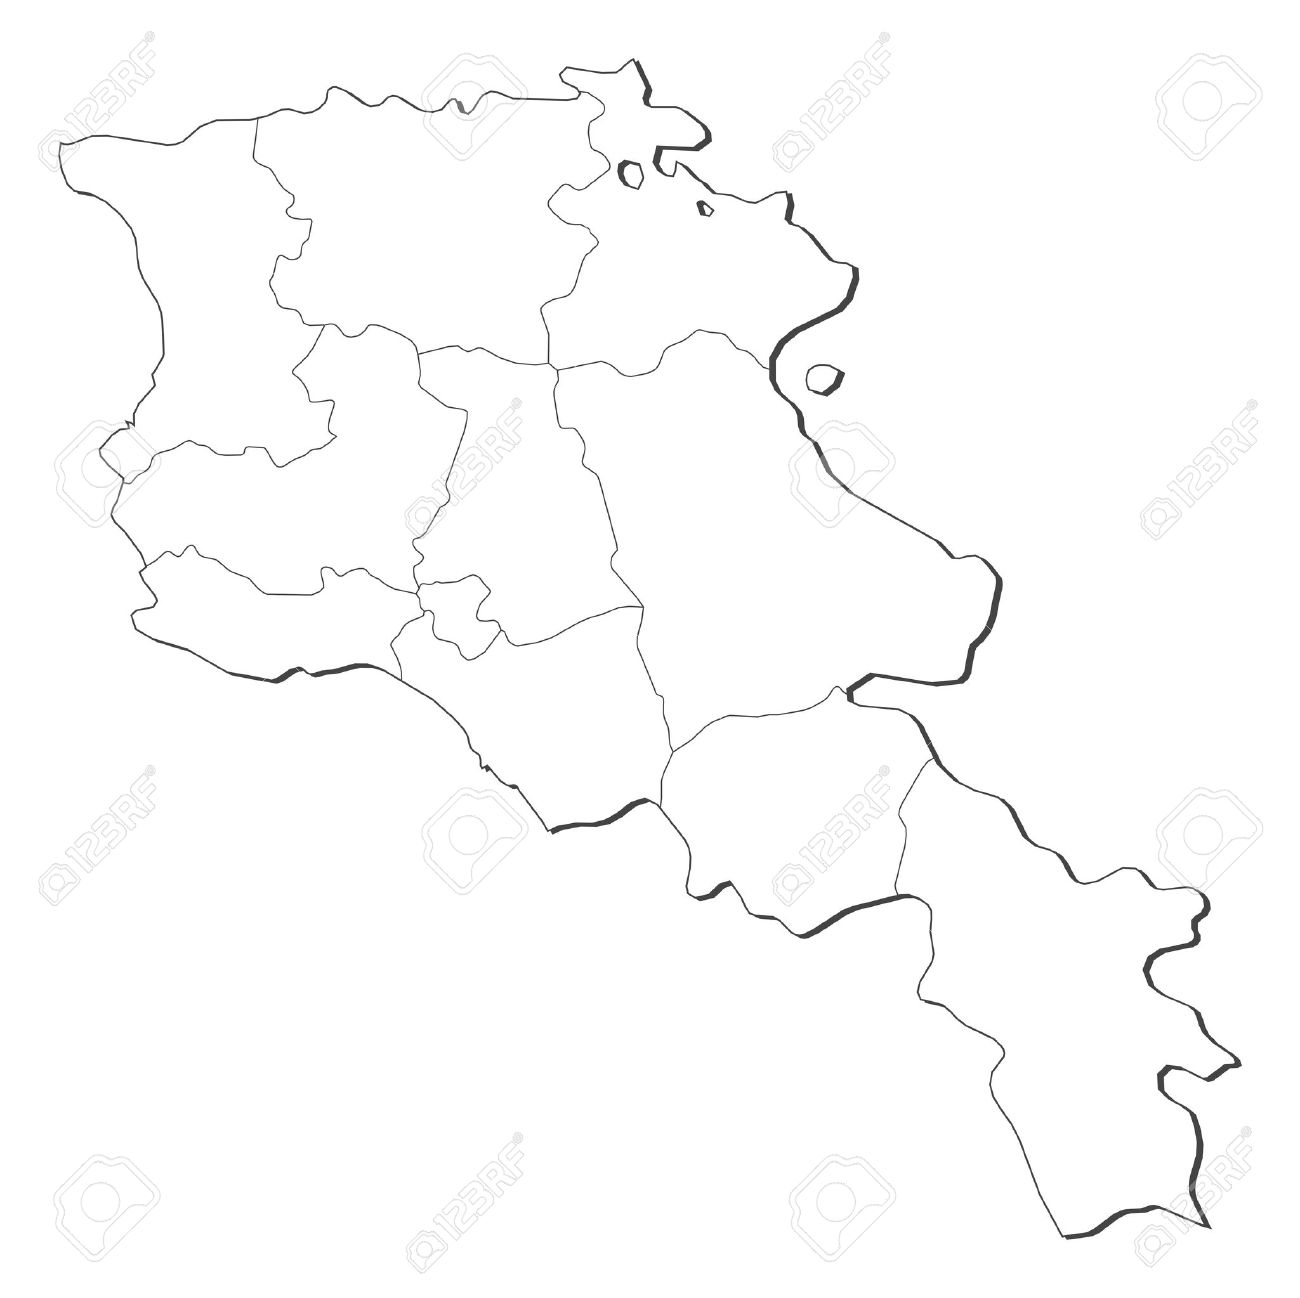 Political Map Of Armenia With The Several Provinces Royalty Free - Political map of armenia